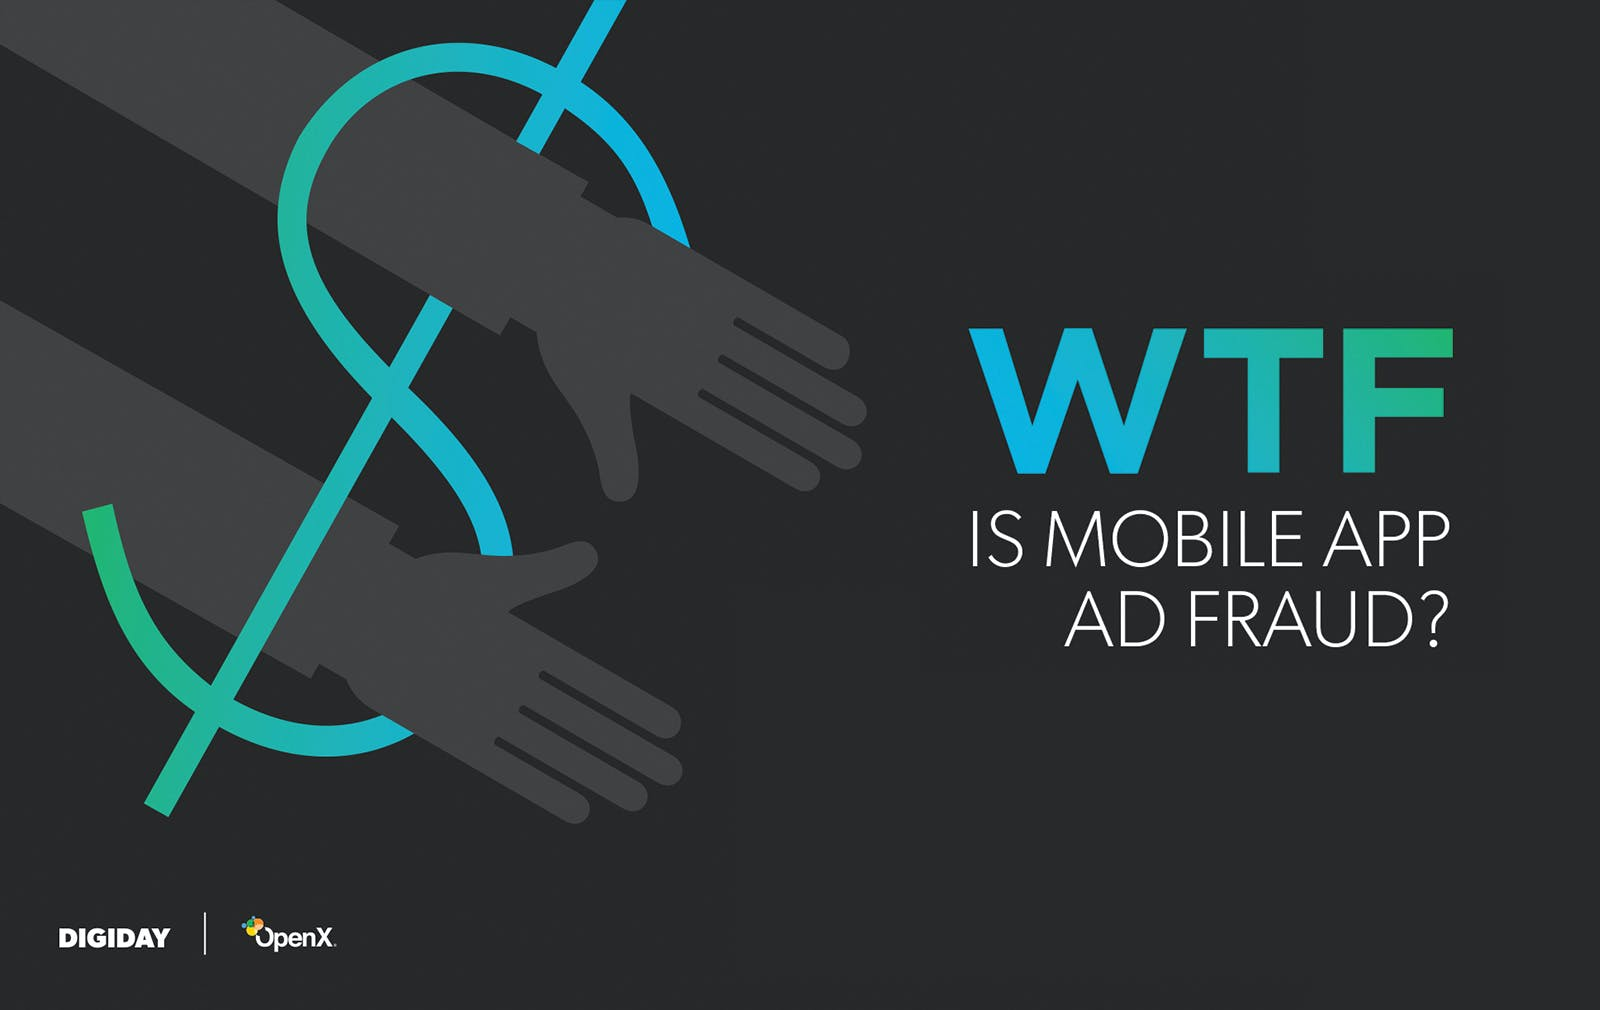 WTF is Mobile App Ad Fraud?